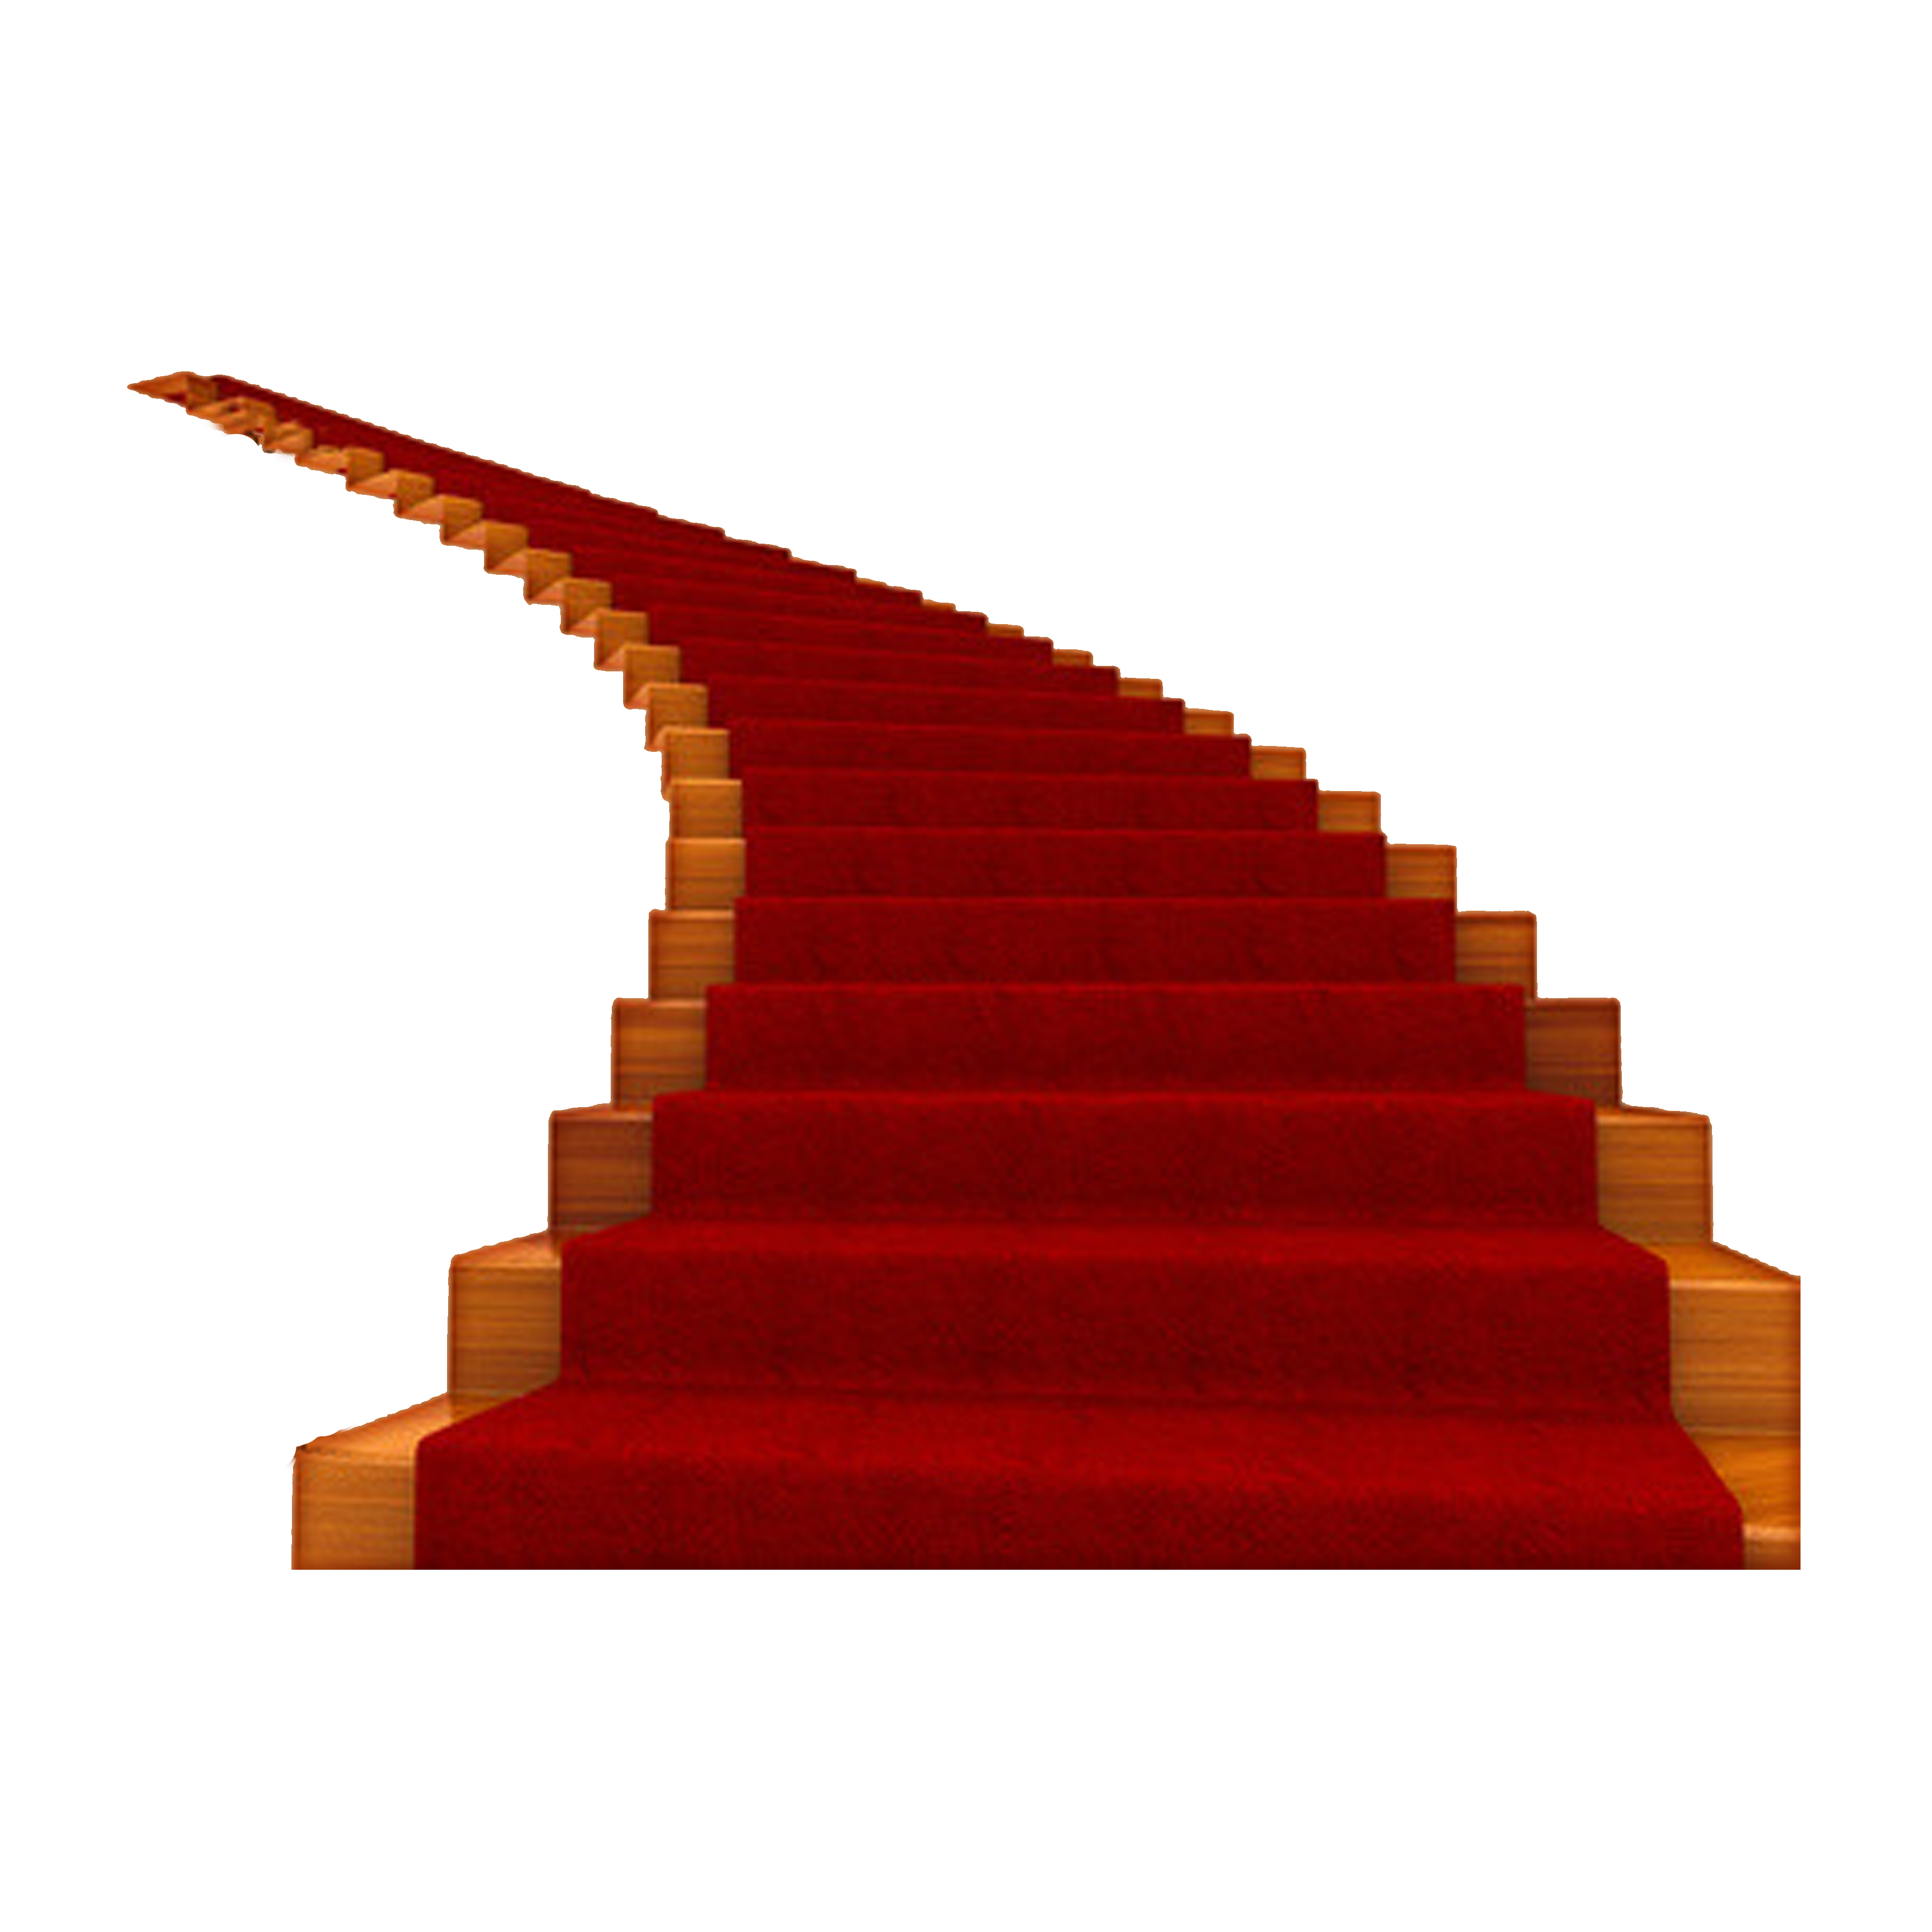 Staircase clipart spiral staircase. Stairs csigalxe pcsu stock